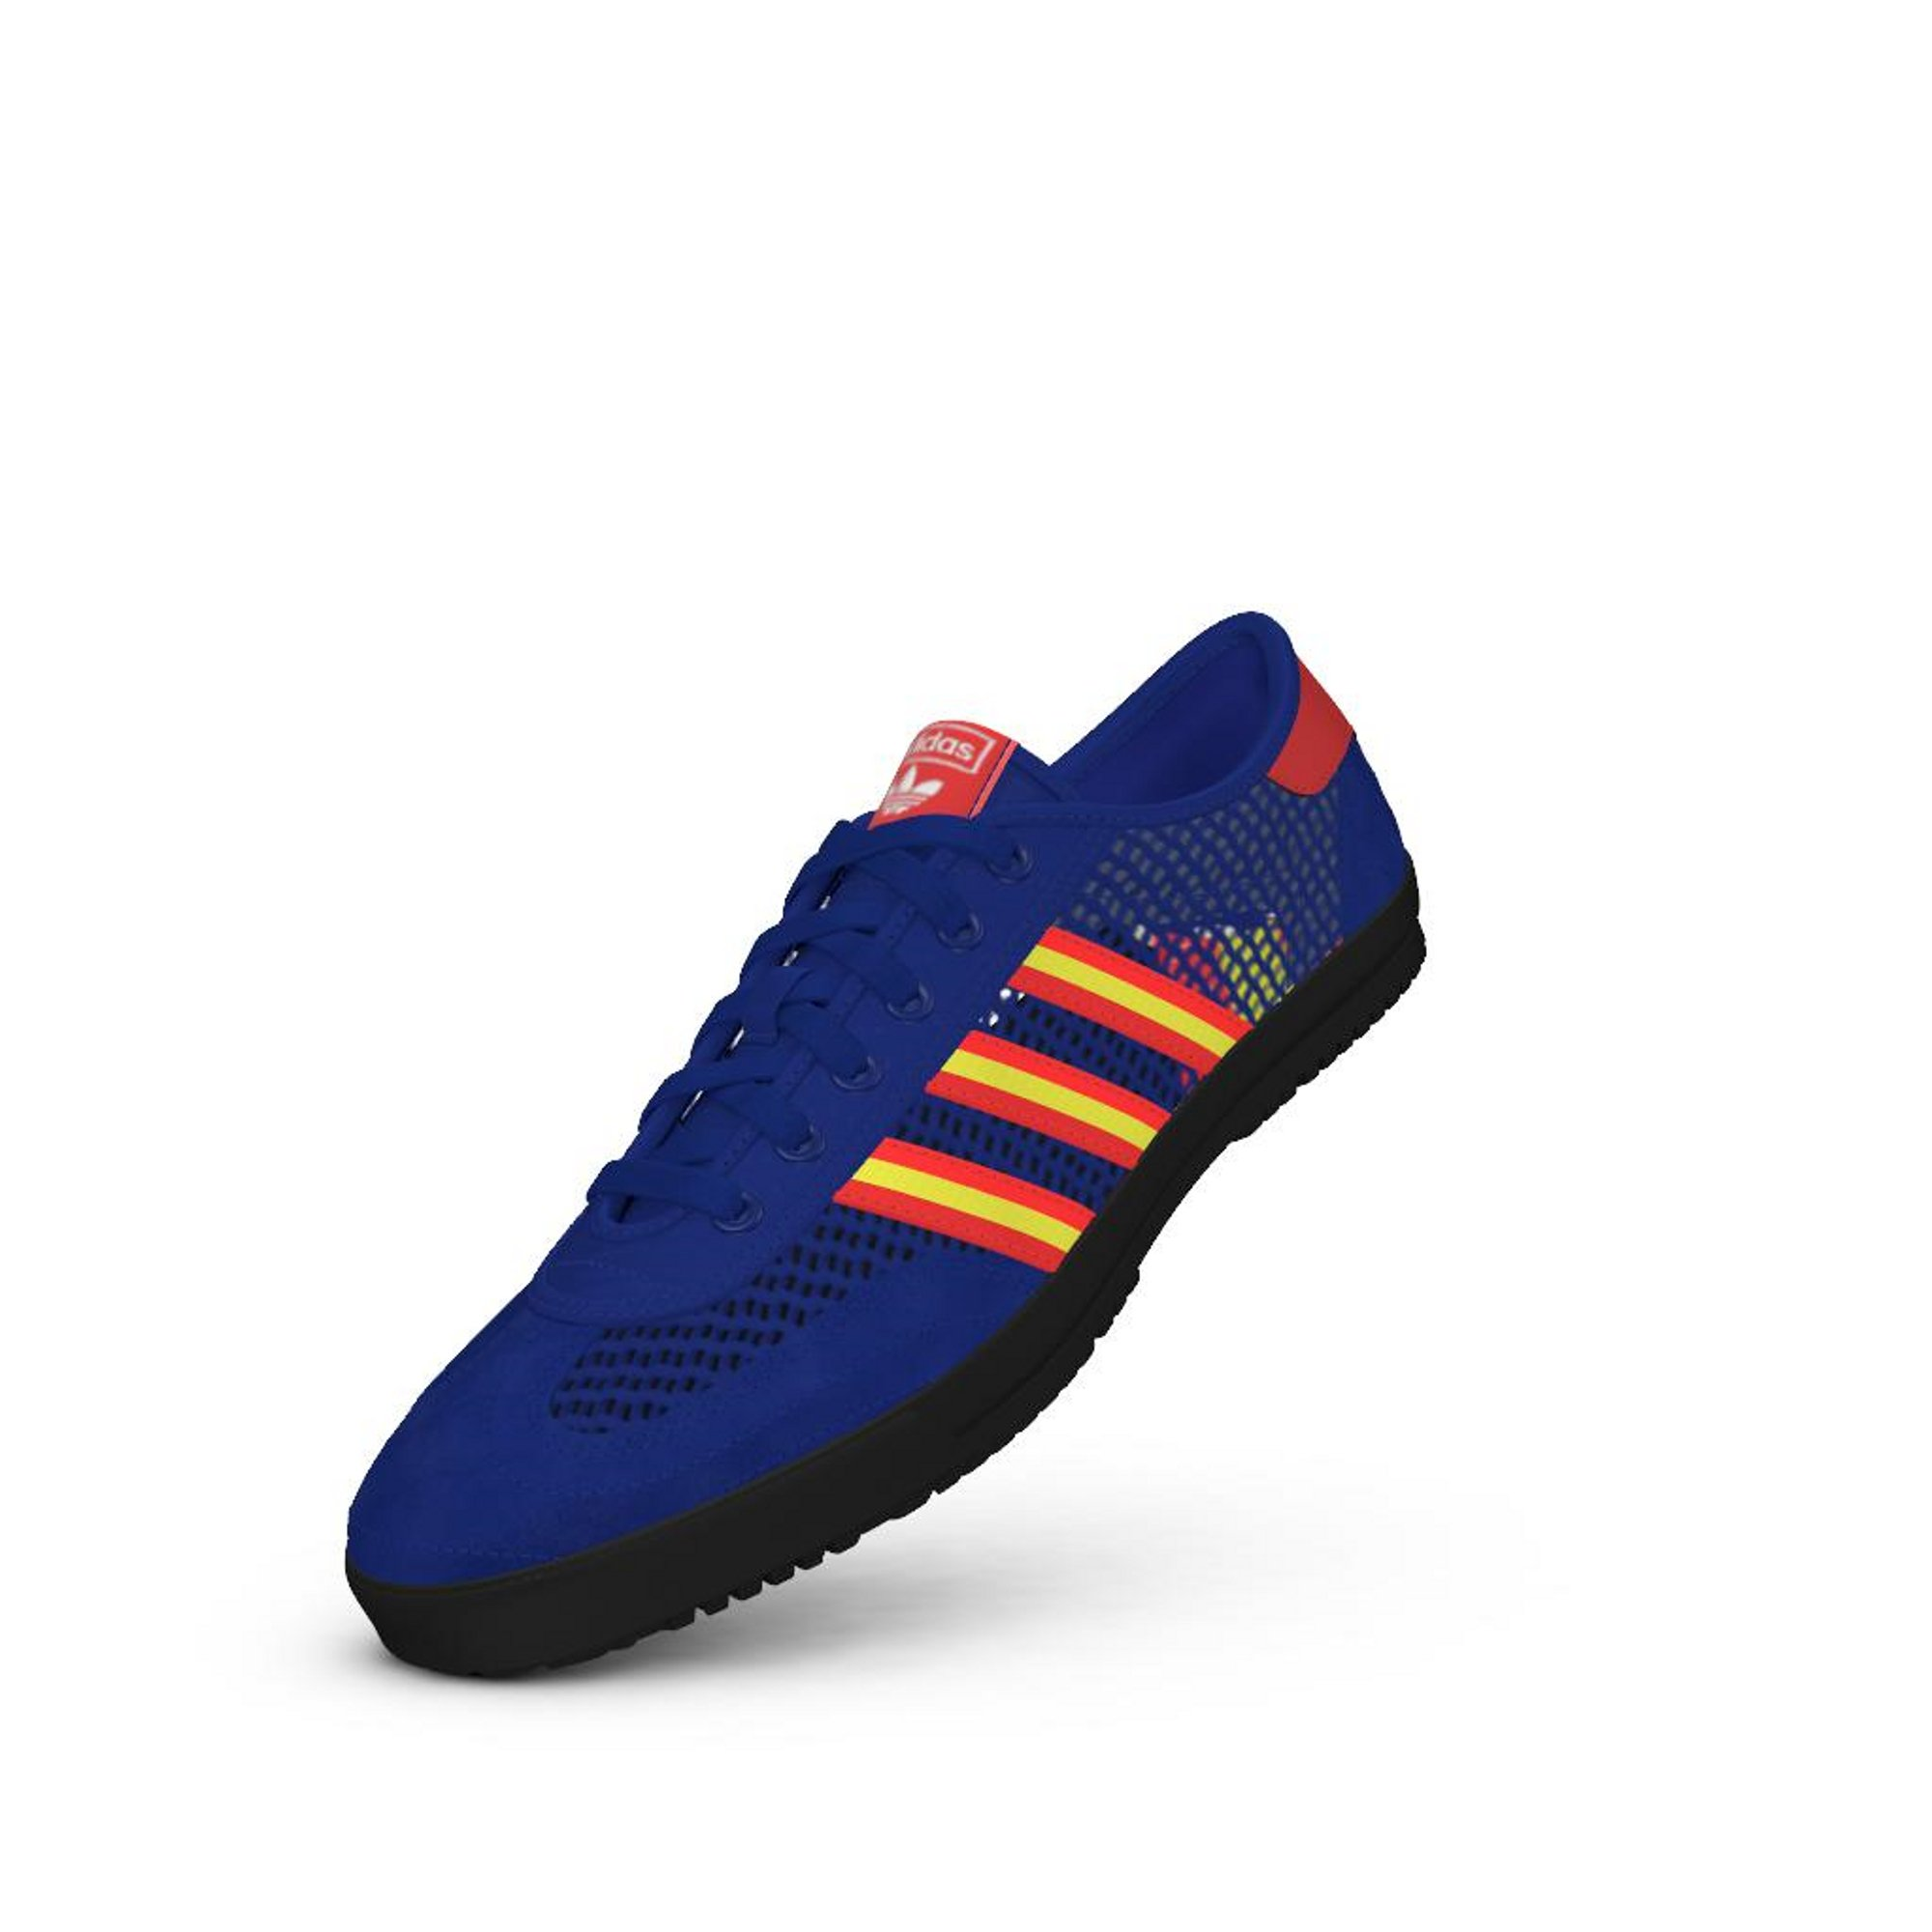 adidas Tischtennis Royal Blue/ Solar Red/ Semi Yellow